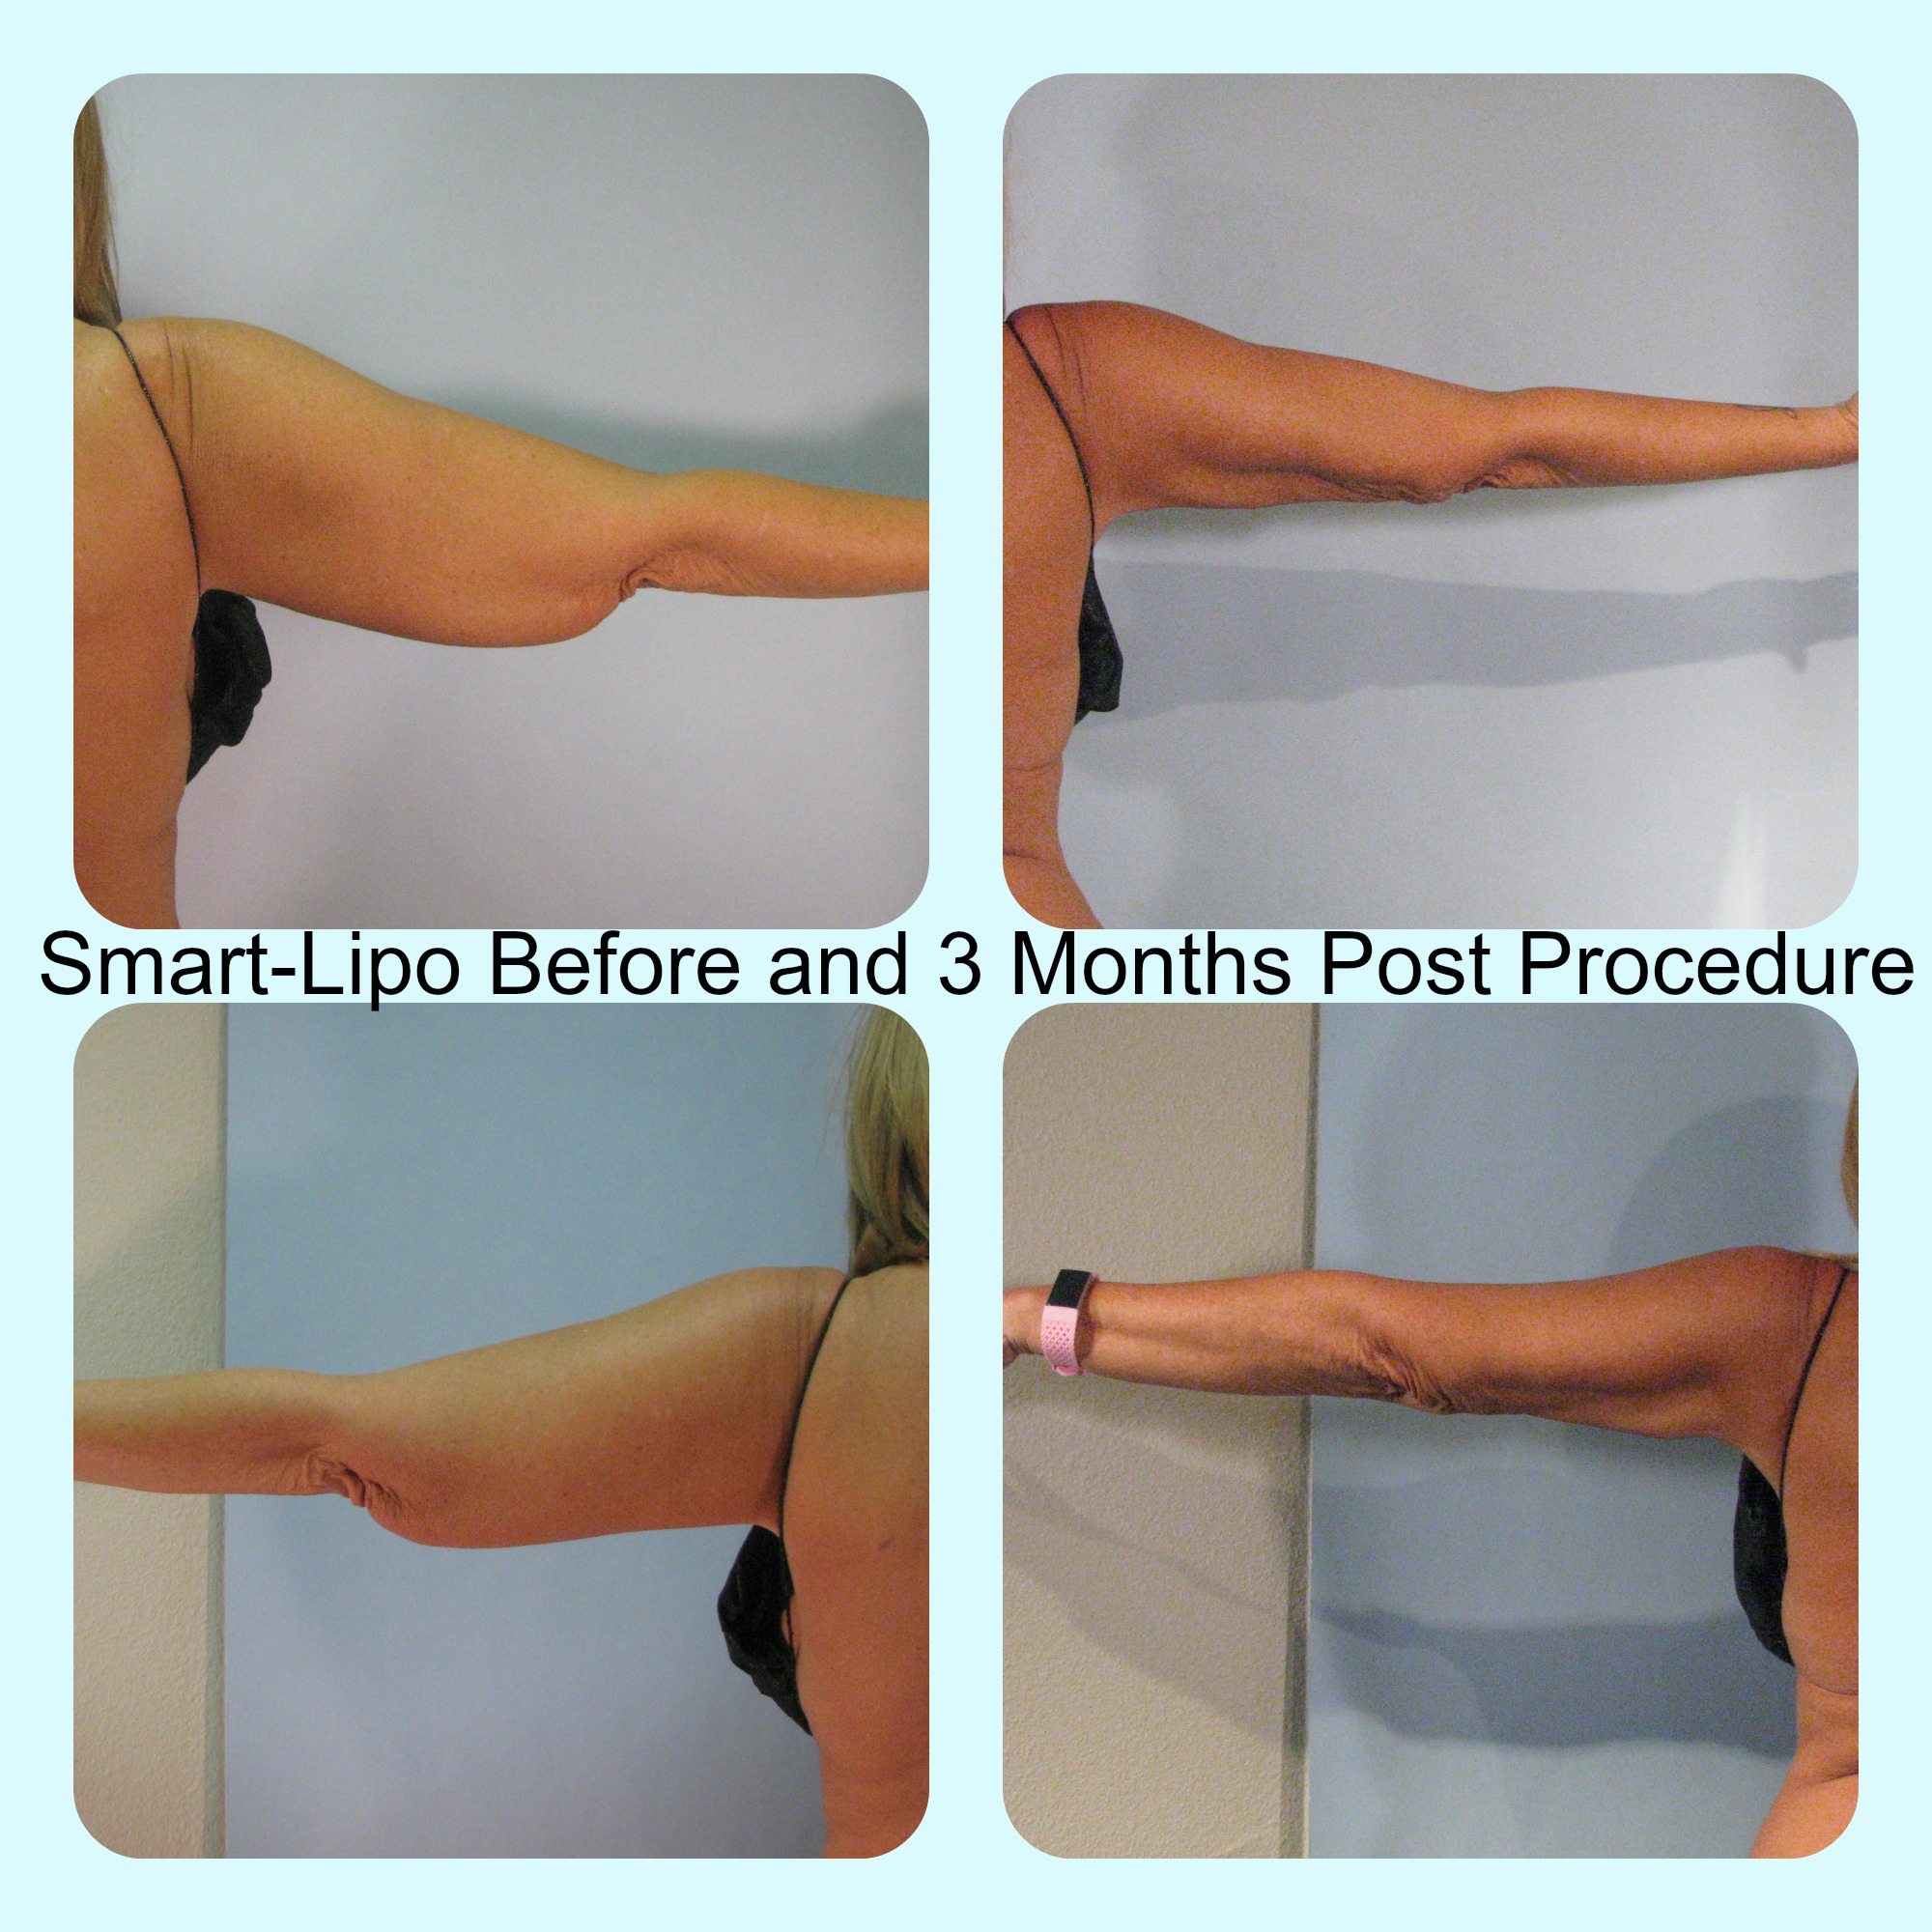 Cynosure SmartLipo Before and After results on arms